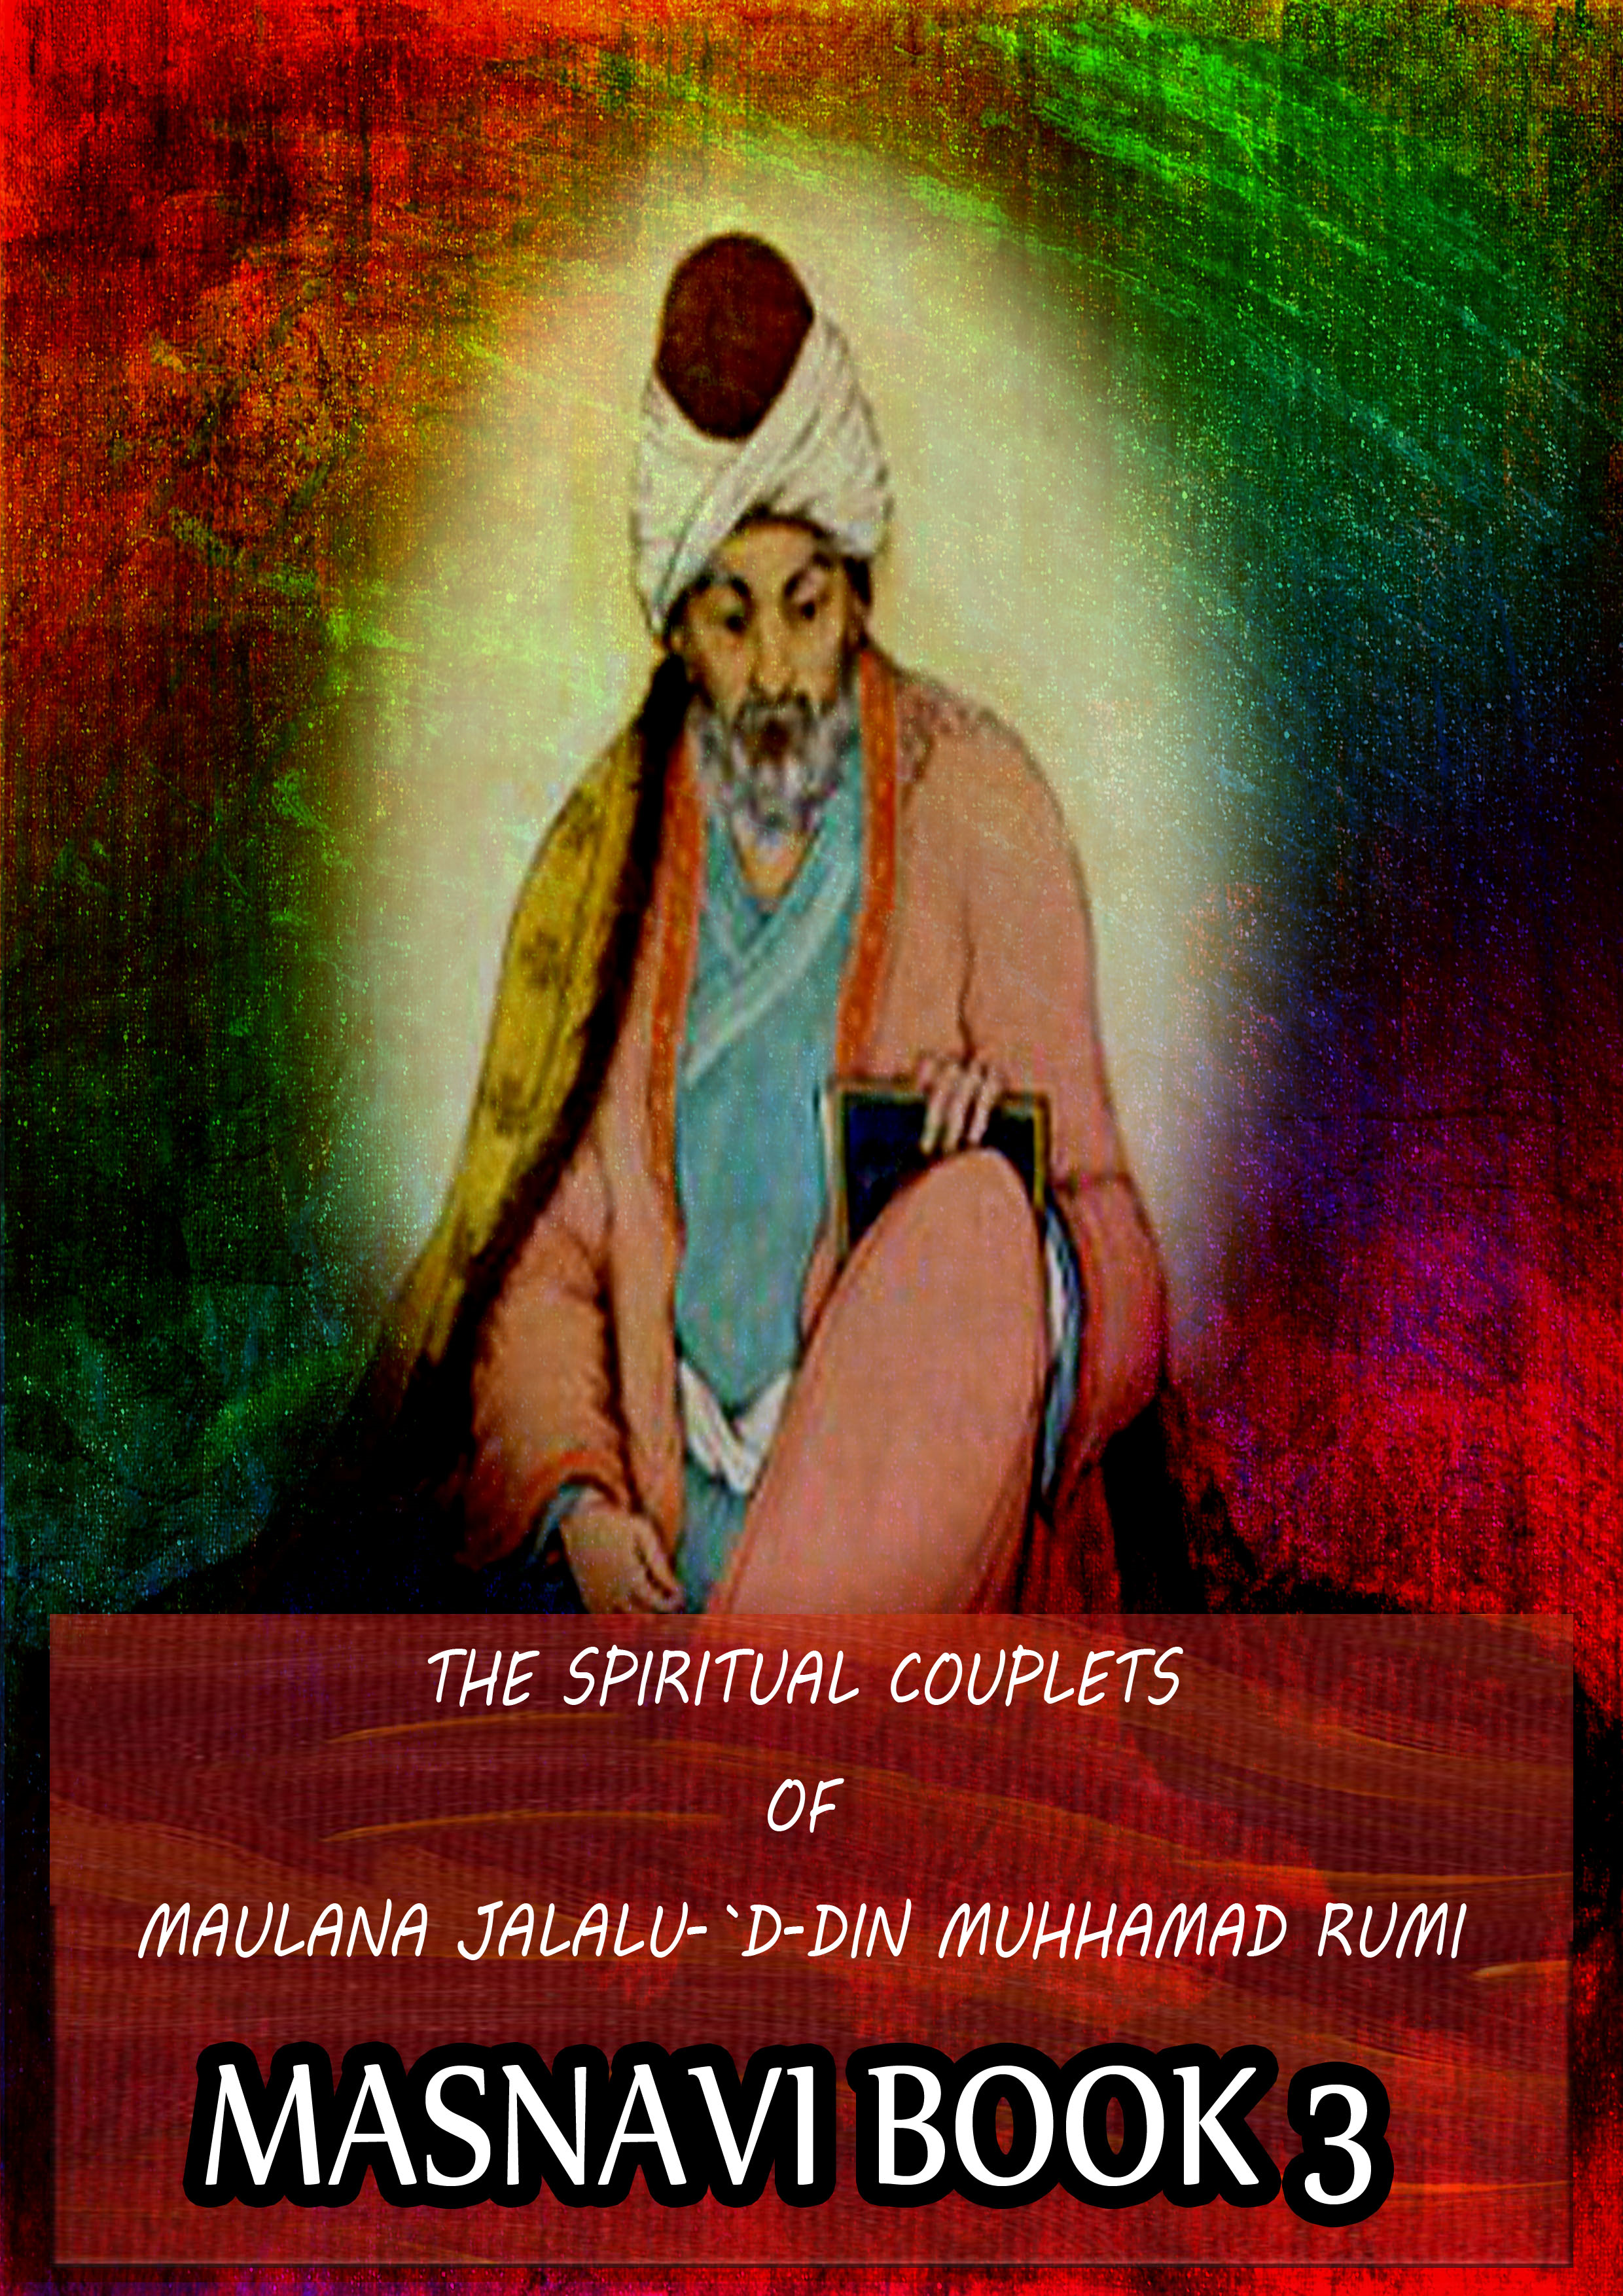 THE SPIRITUAL COUPLETS OF MAULANA JALALU-'D-DlN MUHAMMAD RUMI Masnavi Book 3 By: E.H. Whinfield